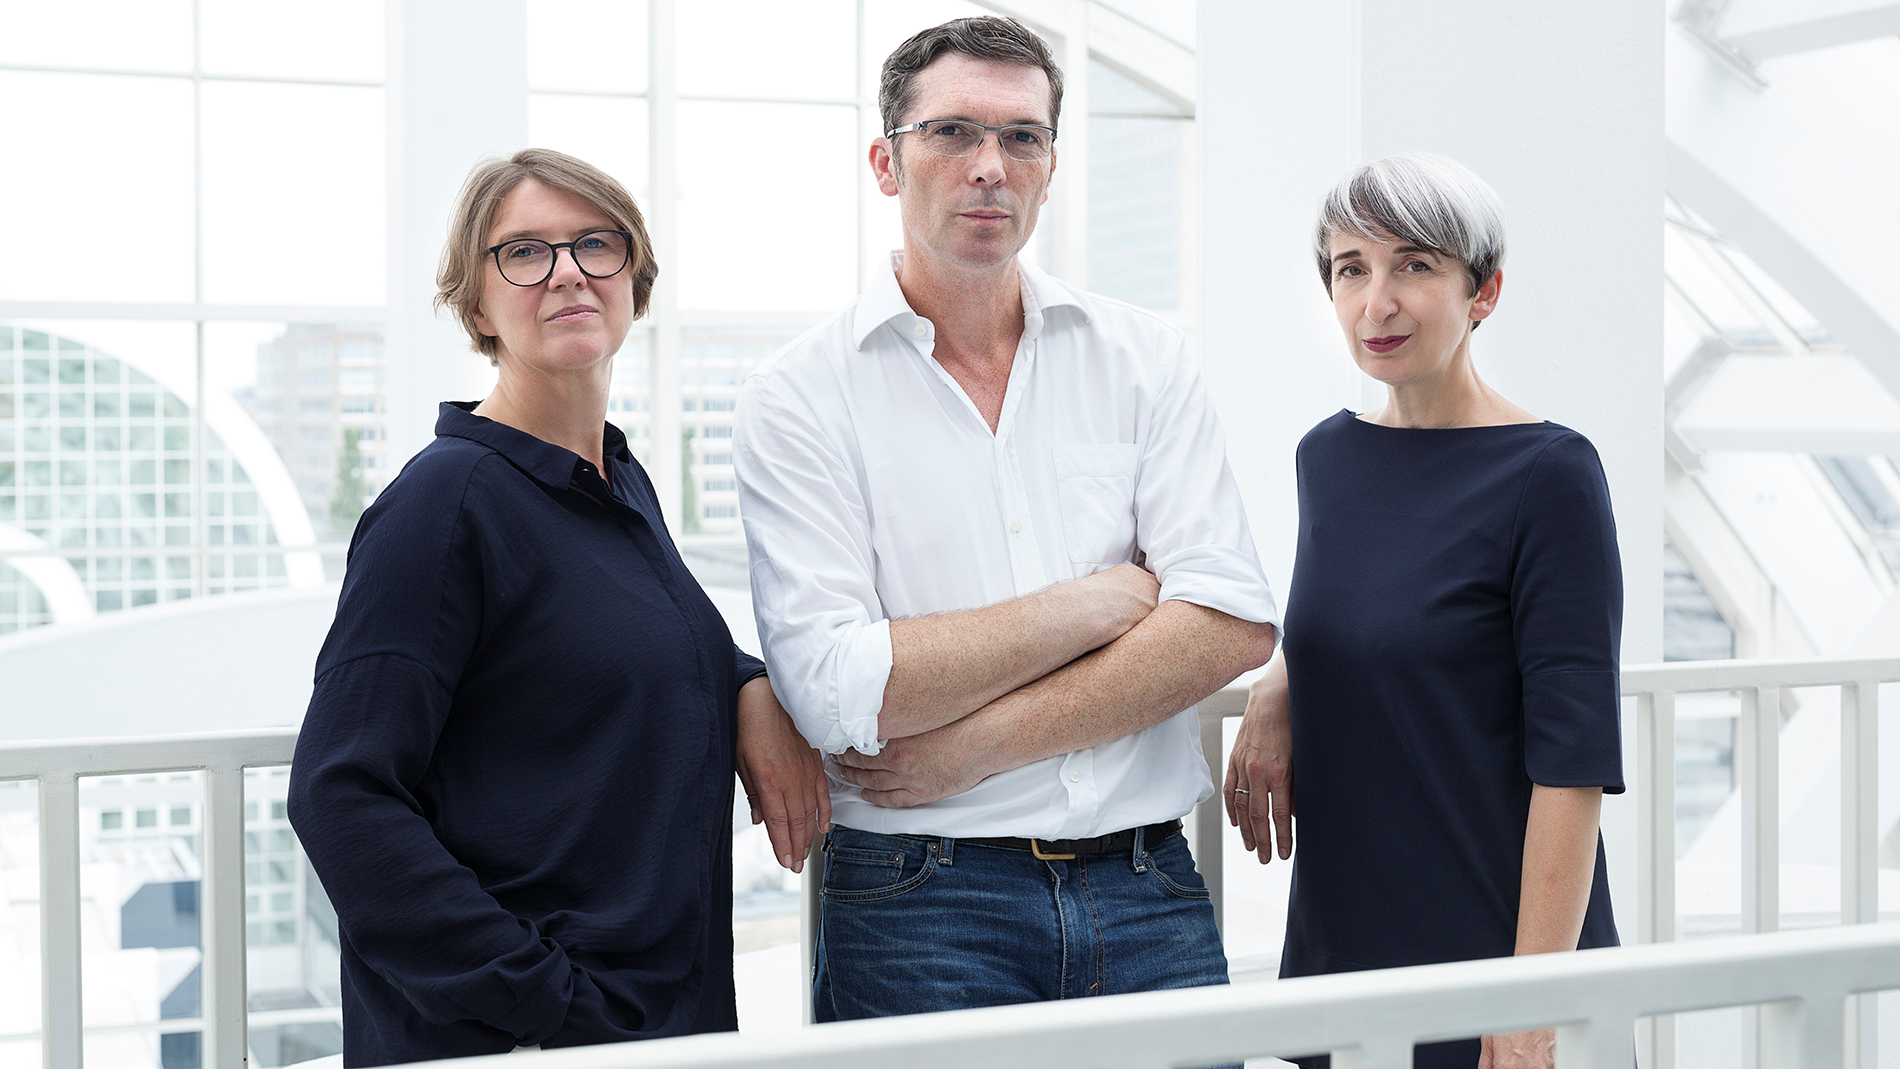 Designers Cem Bora, Claudia Herke and Annetta Palmisano from the design studio bora.herke